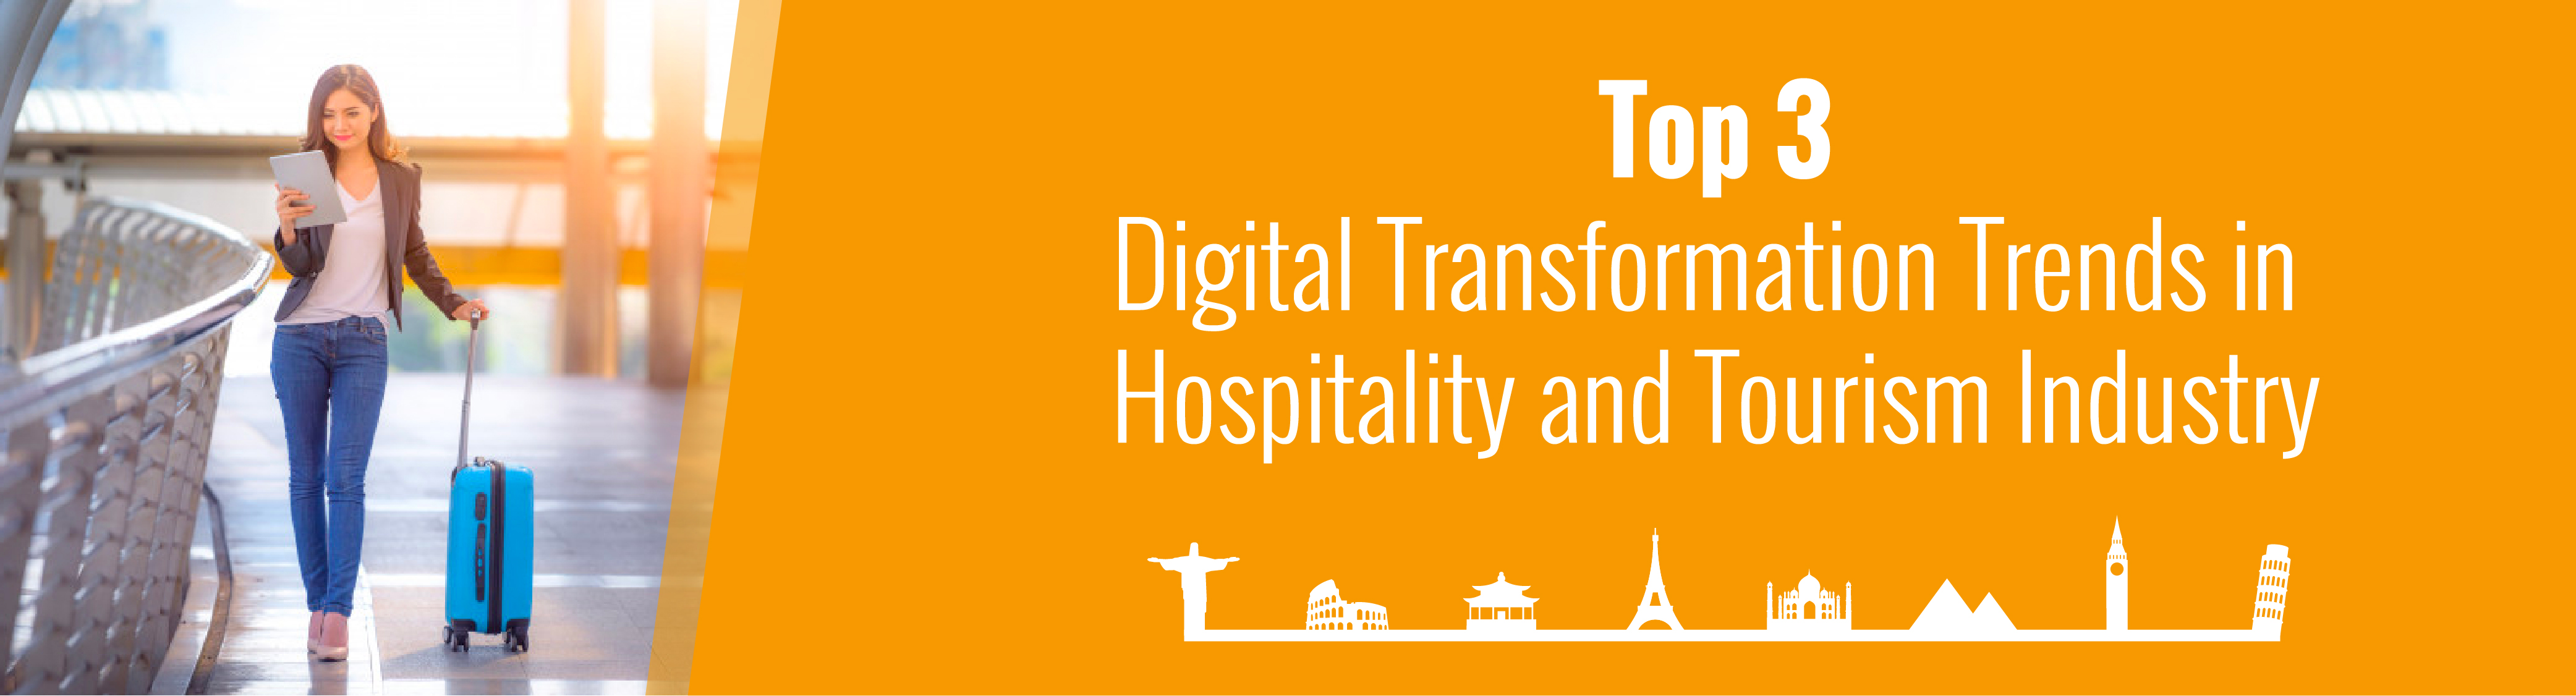 Top 3 Digital Transformation Trends in Hospitality and Tourism Industry  -02 (1)